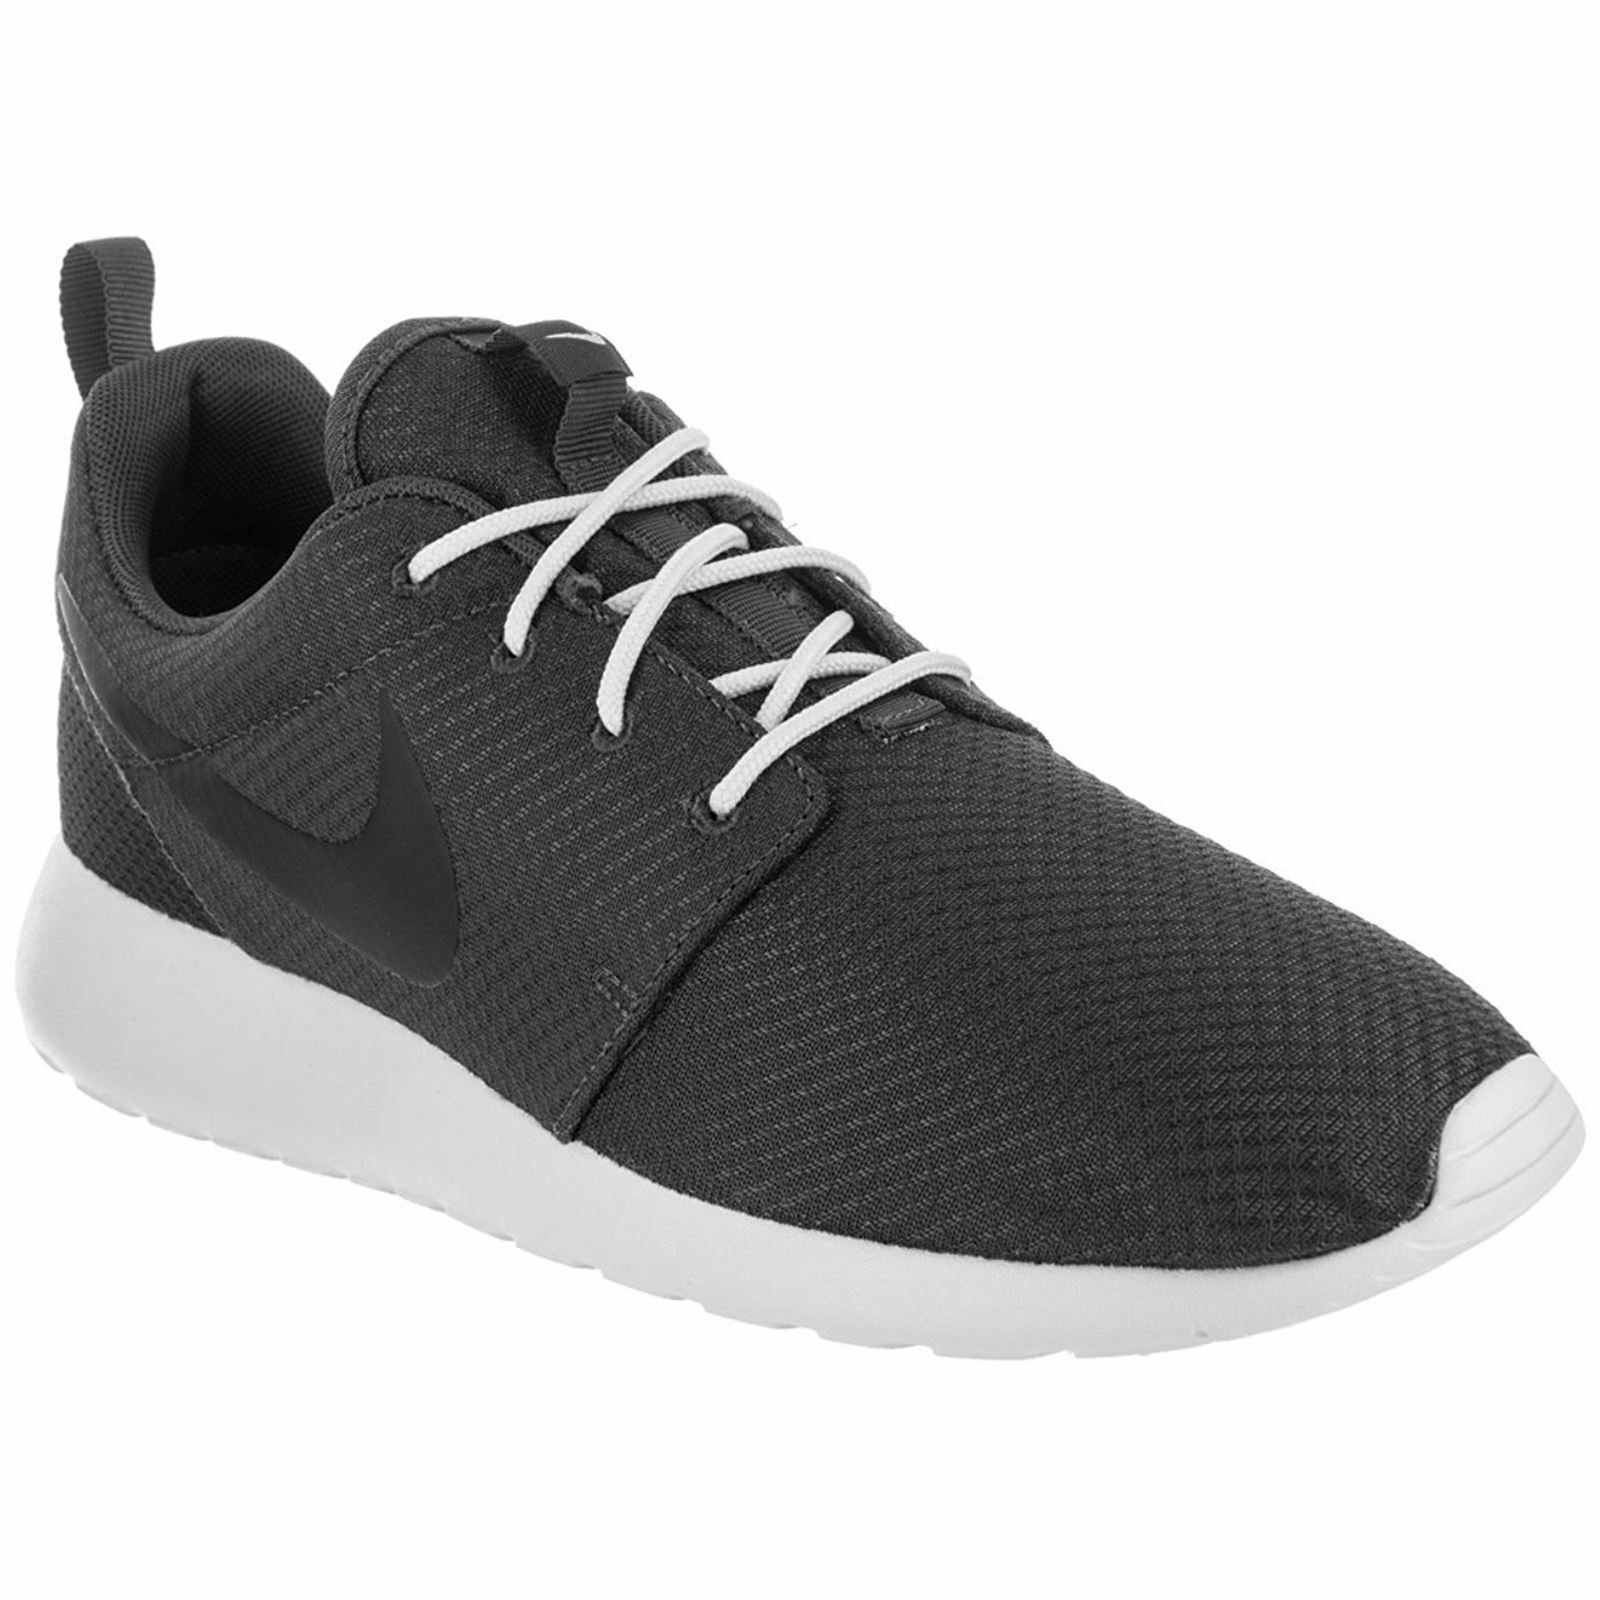 Nike Roshe One Anthracite Black Mens Low-top Cushioning Sneakers Trainers